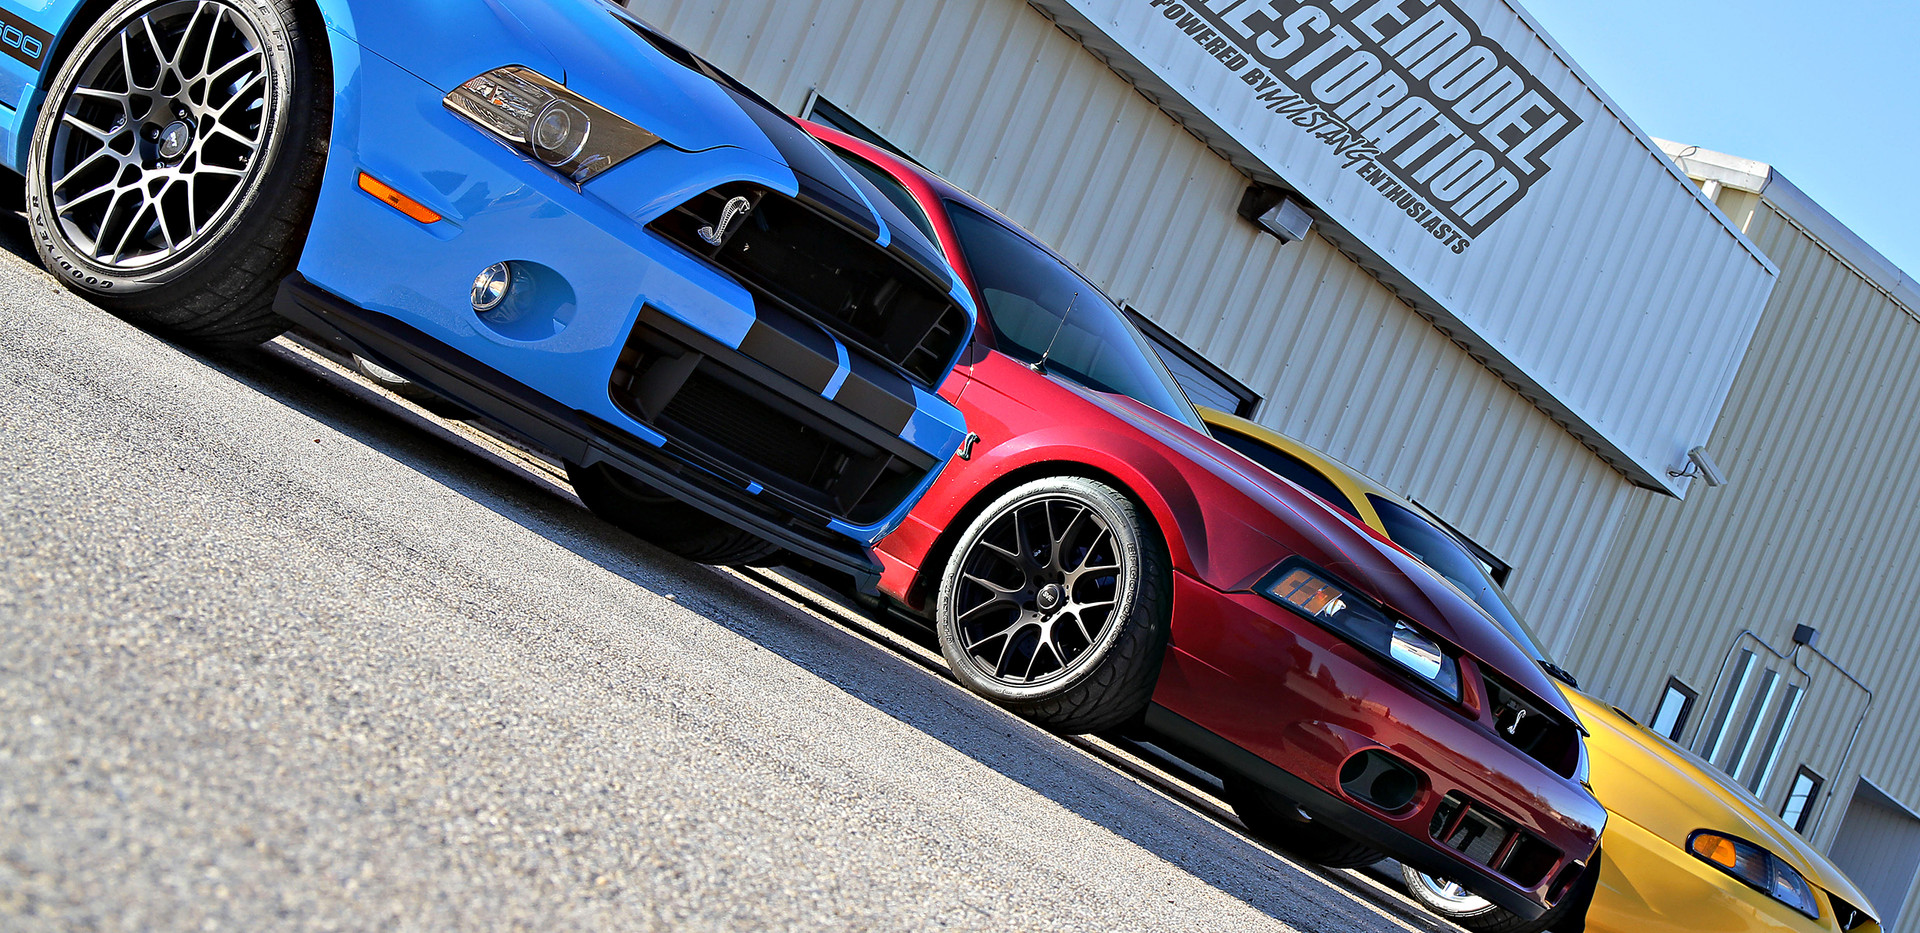 mustang-project-cars_8149.jpg